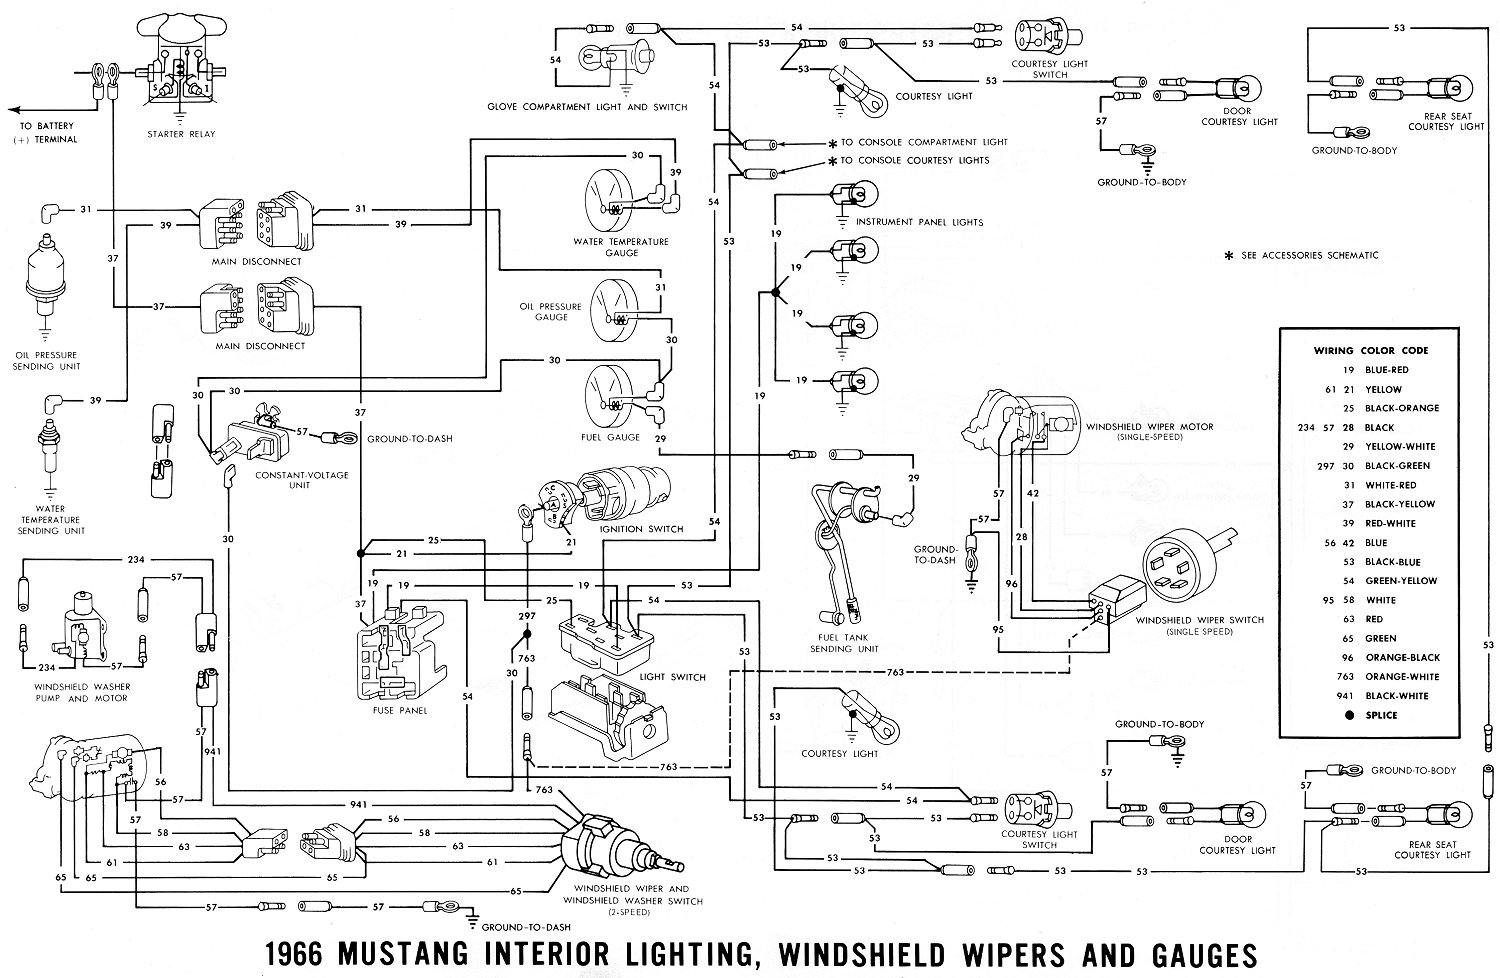 66inter1 1966 mustang wiring diagram 1967 mustang wiring schematic \u2022 wiring 1967 mustang ignition wiring diagram at gsmx.co